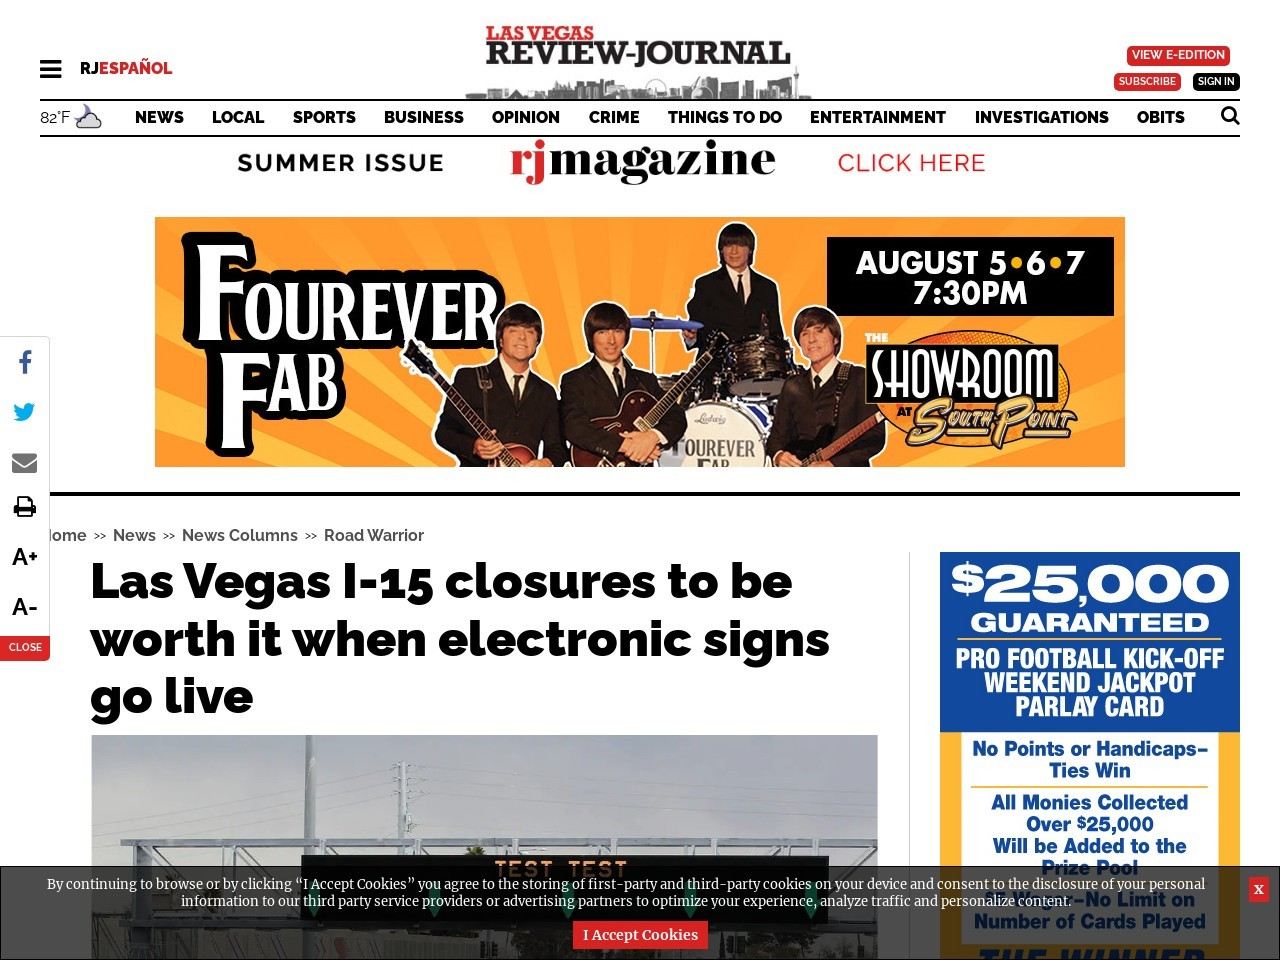 Las Vegas I-15 closures to be worth hassle when ATM signs go live